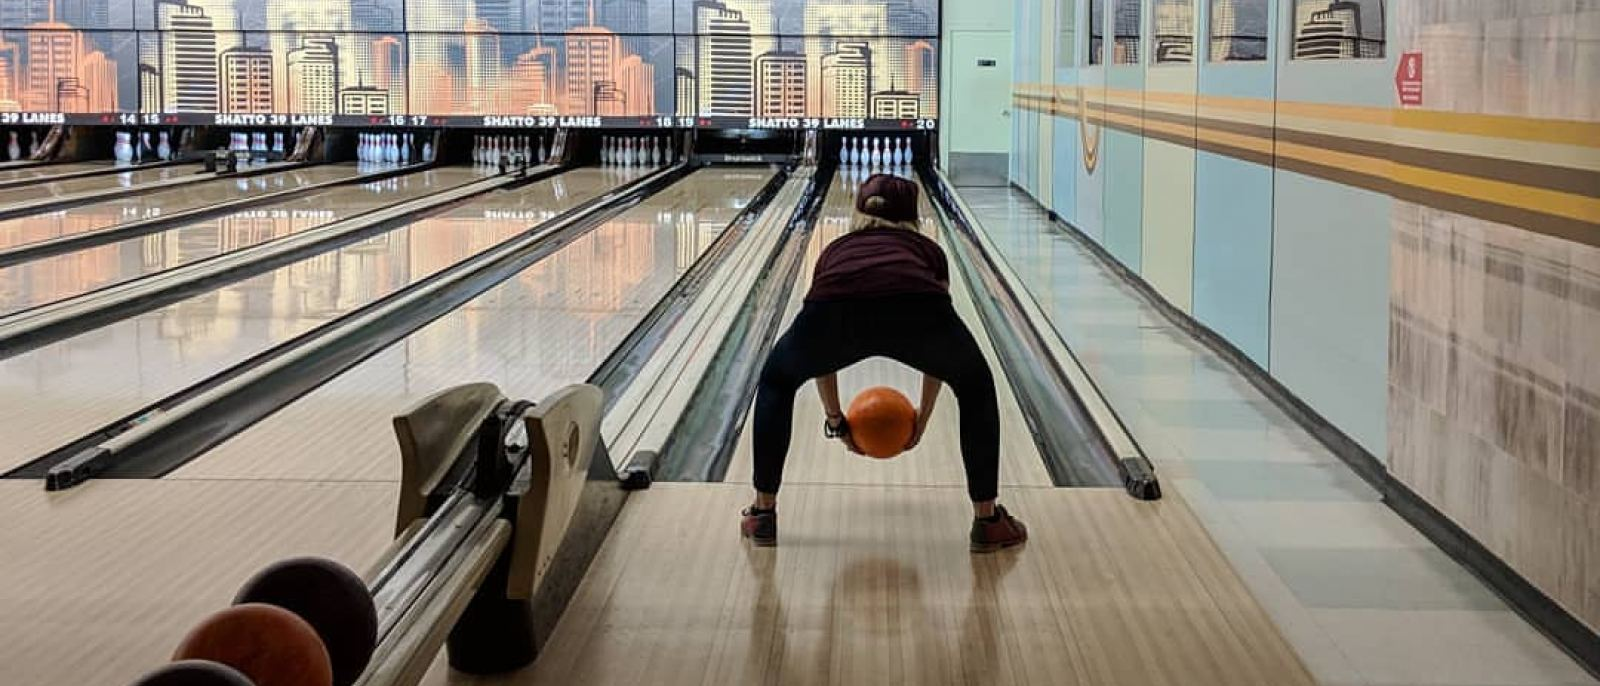 Shatto 39 Lanes | Photo: @banfhammer, Instagram